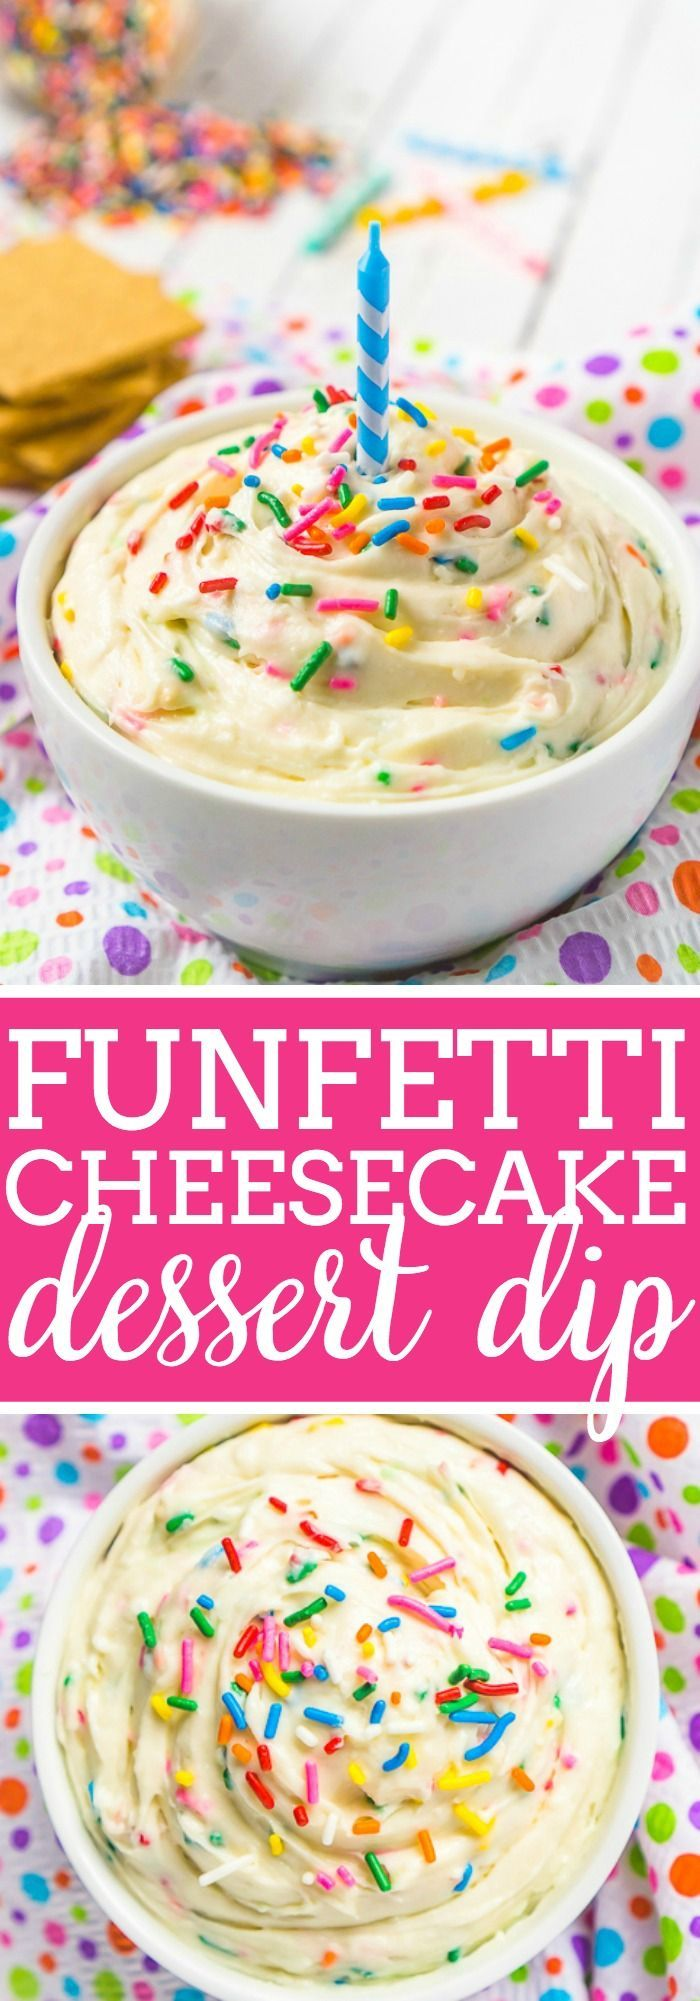 Enjoy your birthday cake in a new way with this delicious Funfetti Cheesecake Dip! Sweet and creamy, this easy funfetti cake batter dip is absolutely addicting and makes the perfect addition to any party menu!  The Love Nerds #dessertdip #cheesecakerecipe #cheesecakedip #birthdaydessert via @lovenerdmaggie